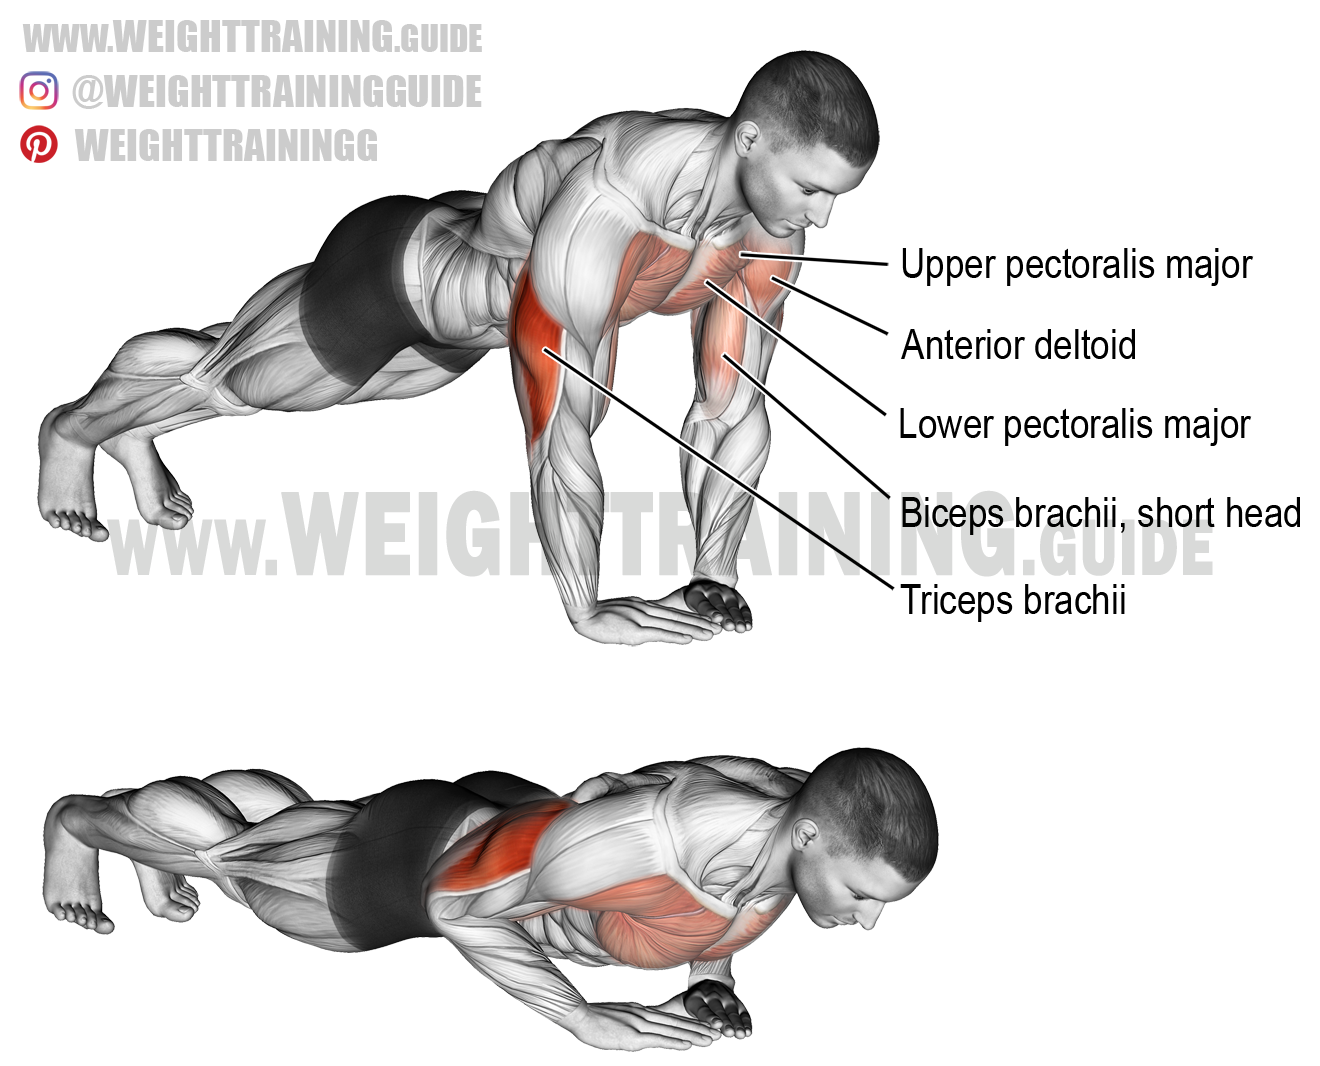 Diamond Push Up Exercise Instructions And Video Weight